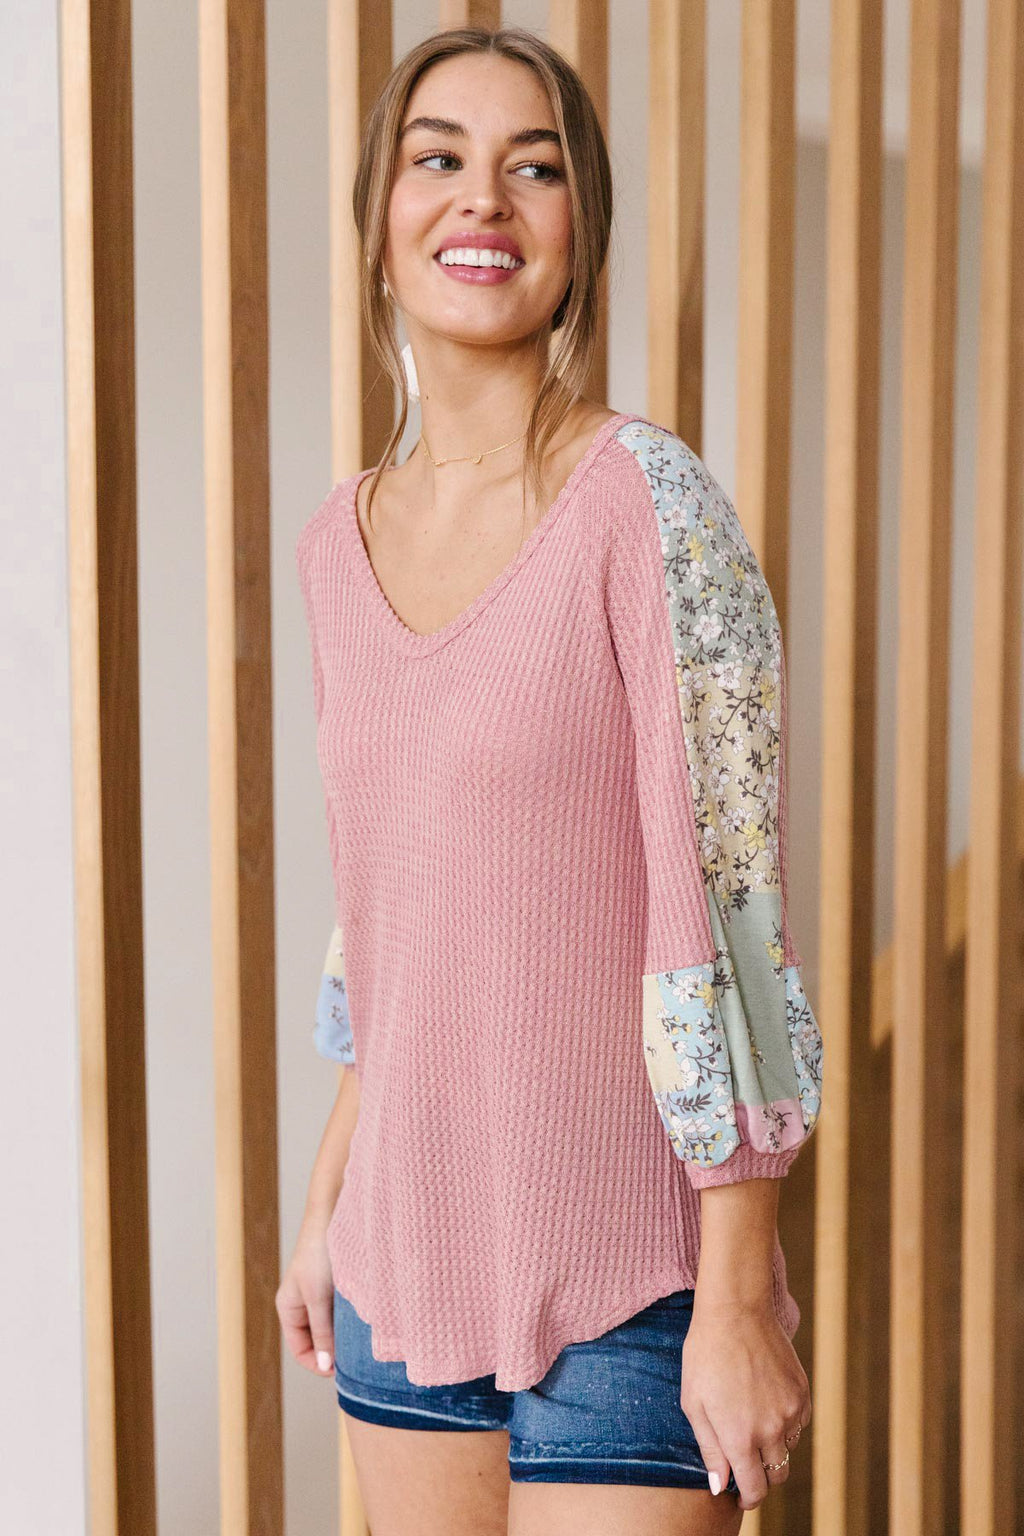 Blushing Blossom Top in Blush